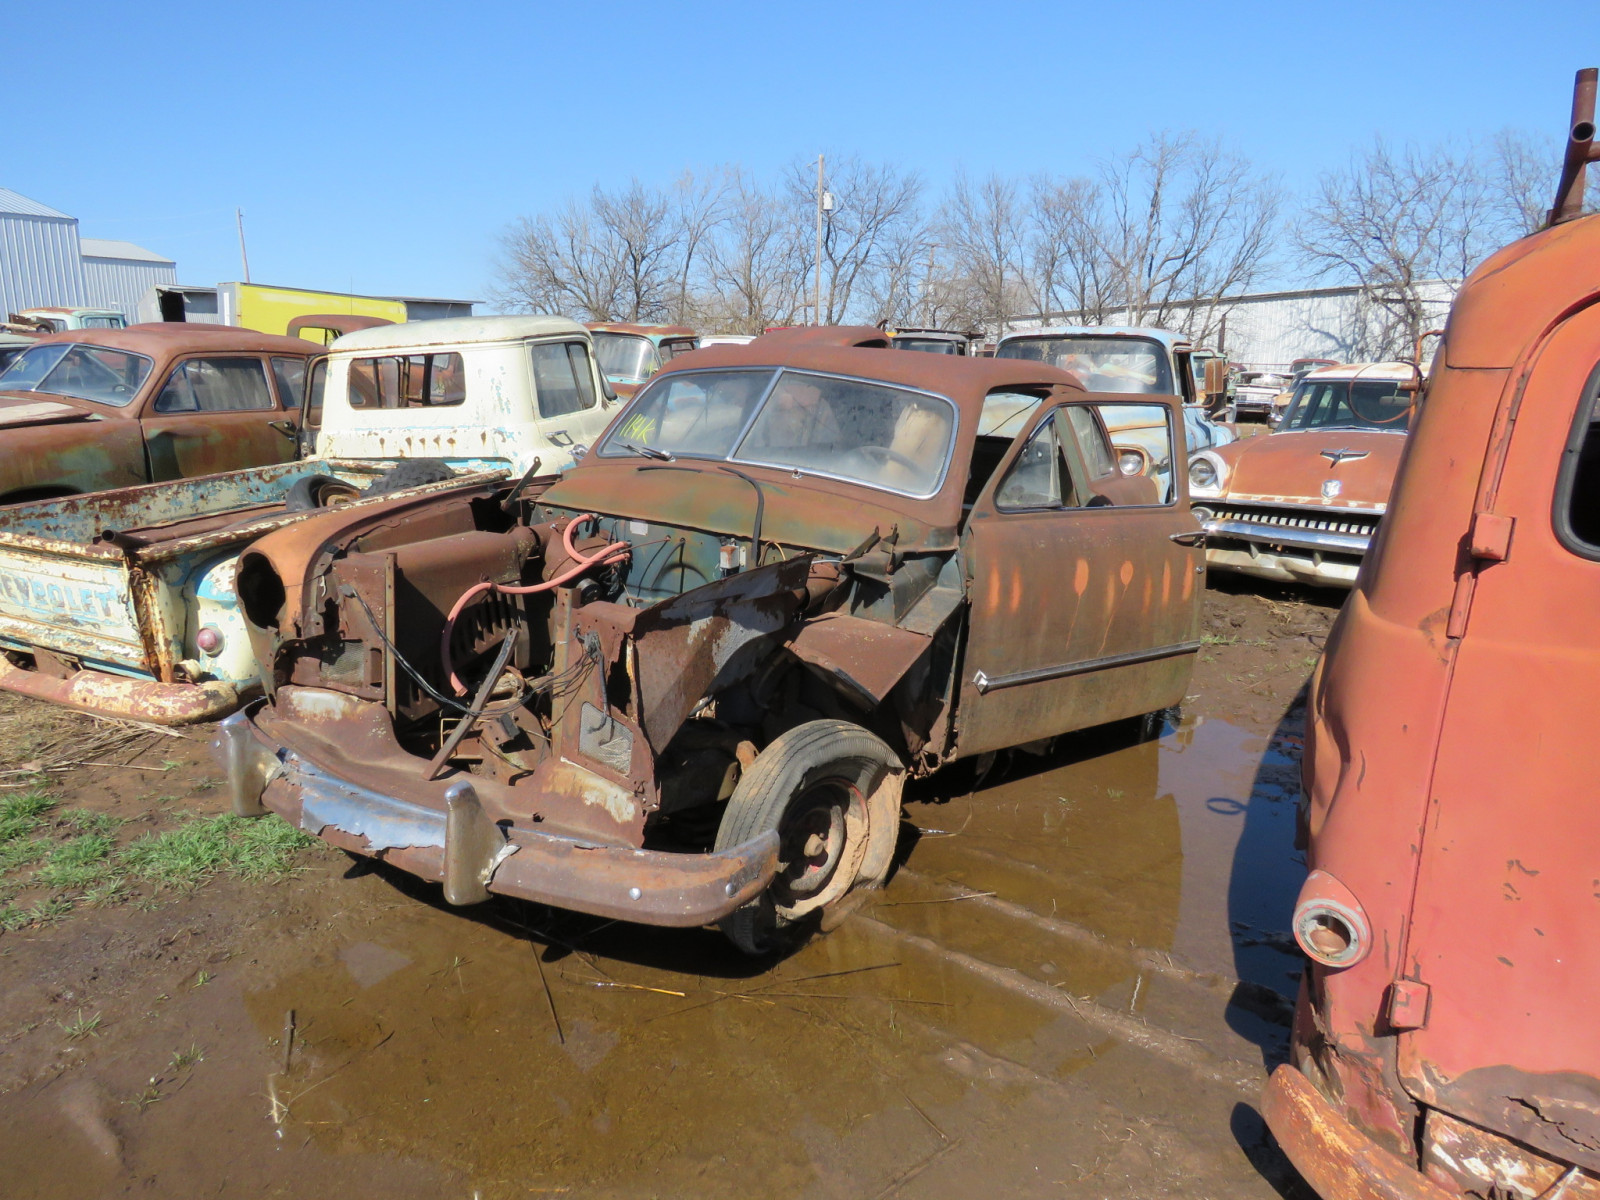 1950 Ford 2dr Sedan for Parts - Image 2